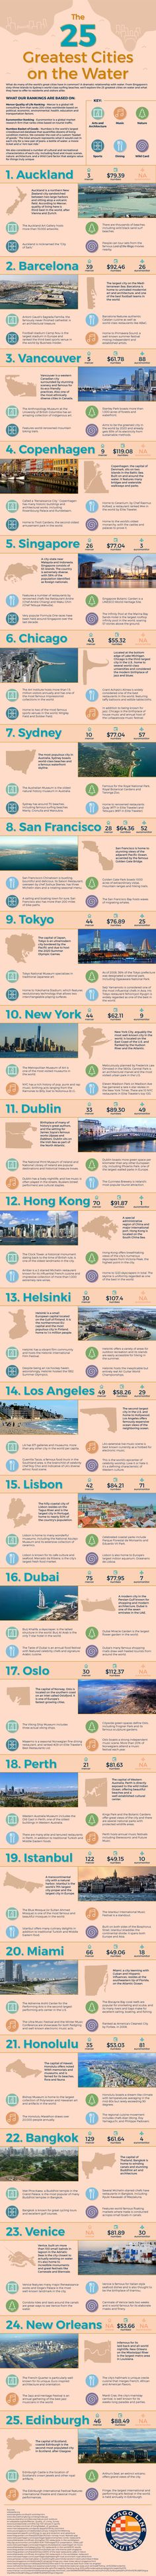 The World's Greatest Coastal and Beach Cities Ranked #Infographic ~ Visualistan